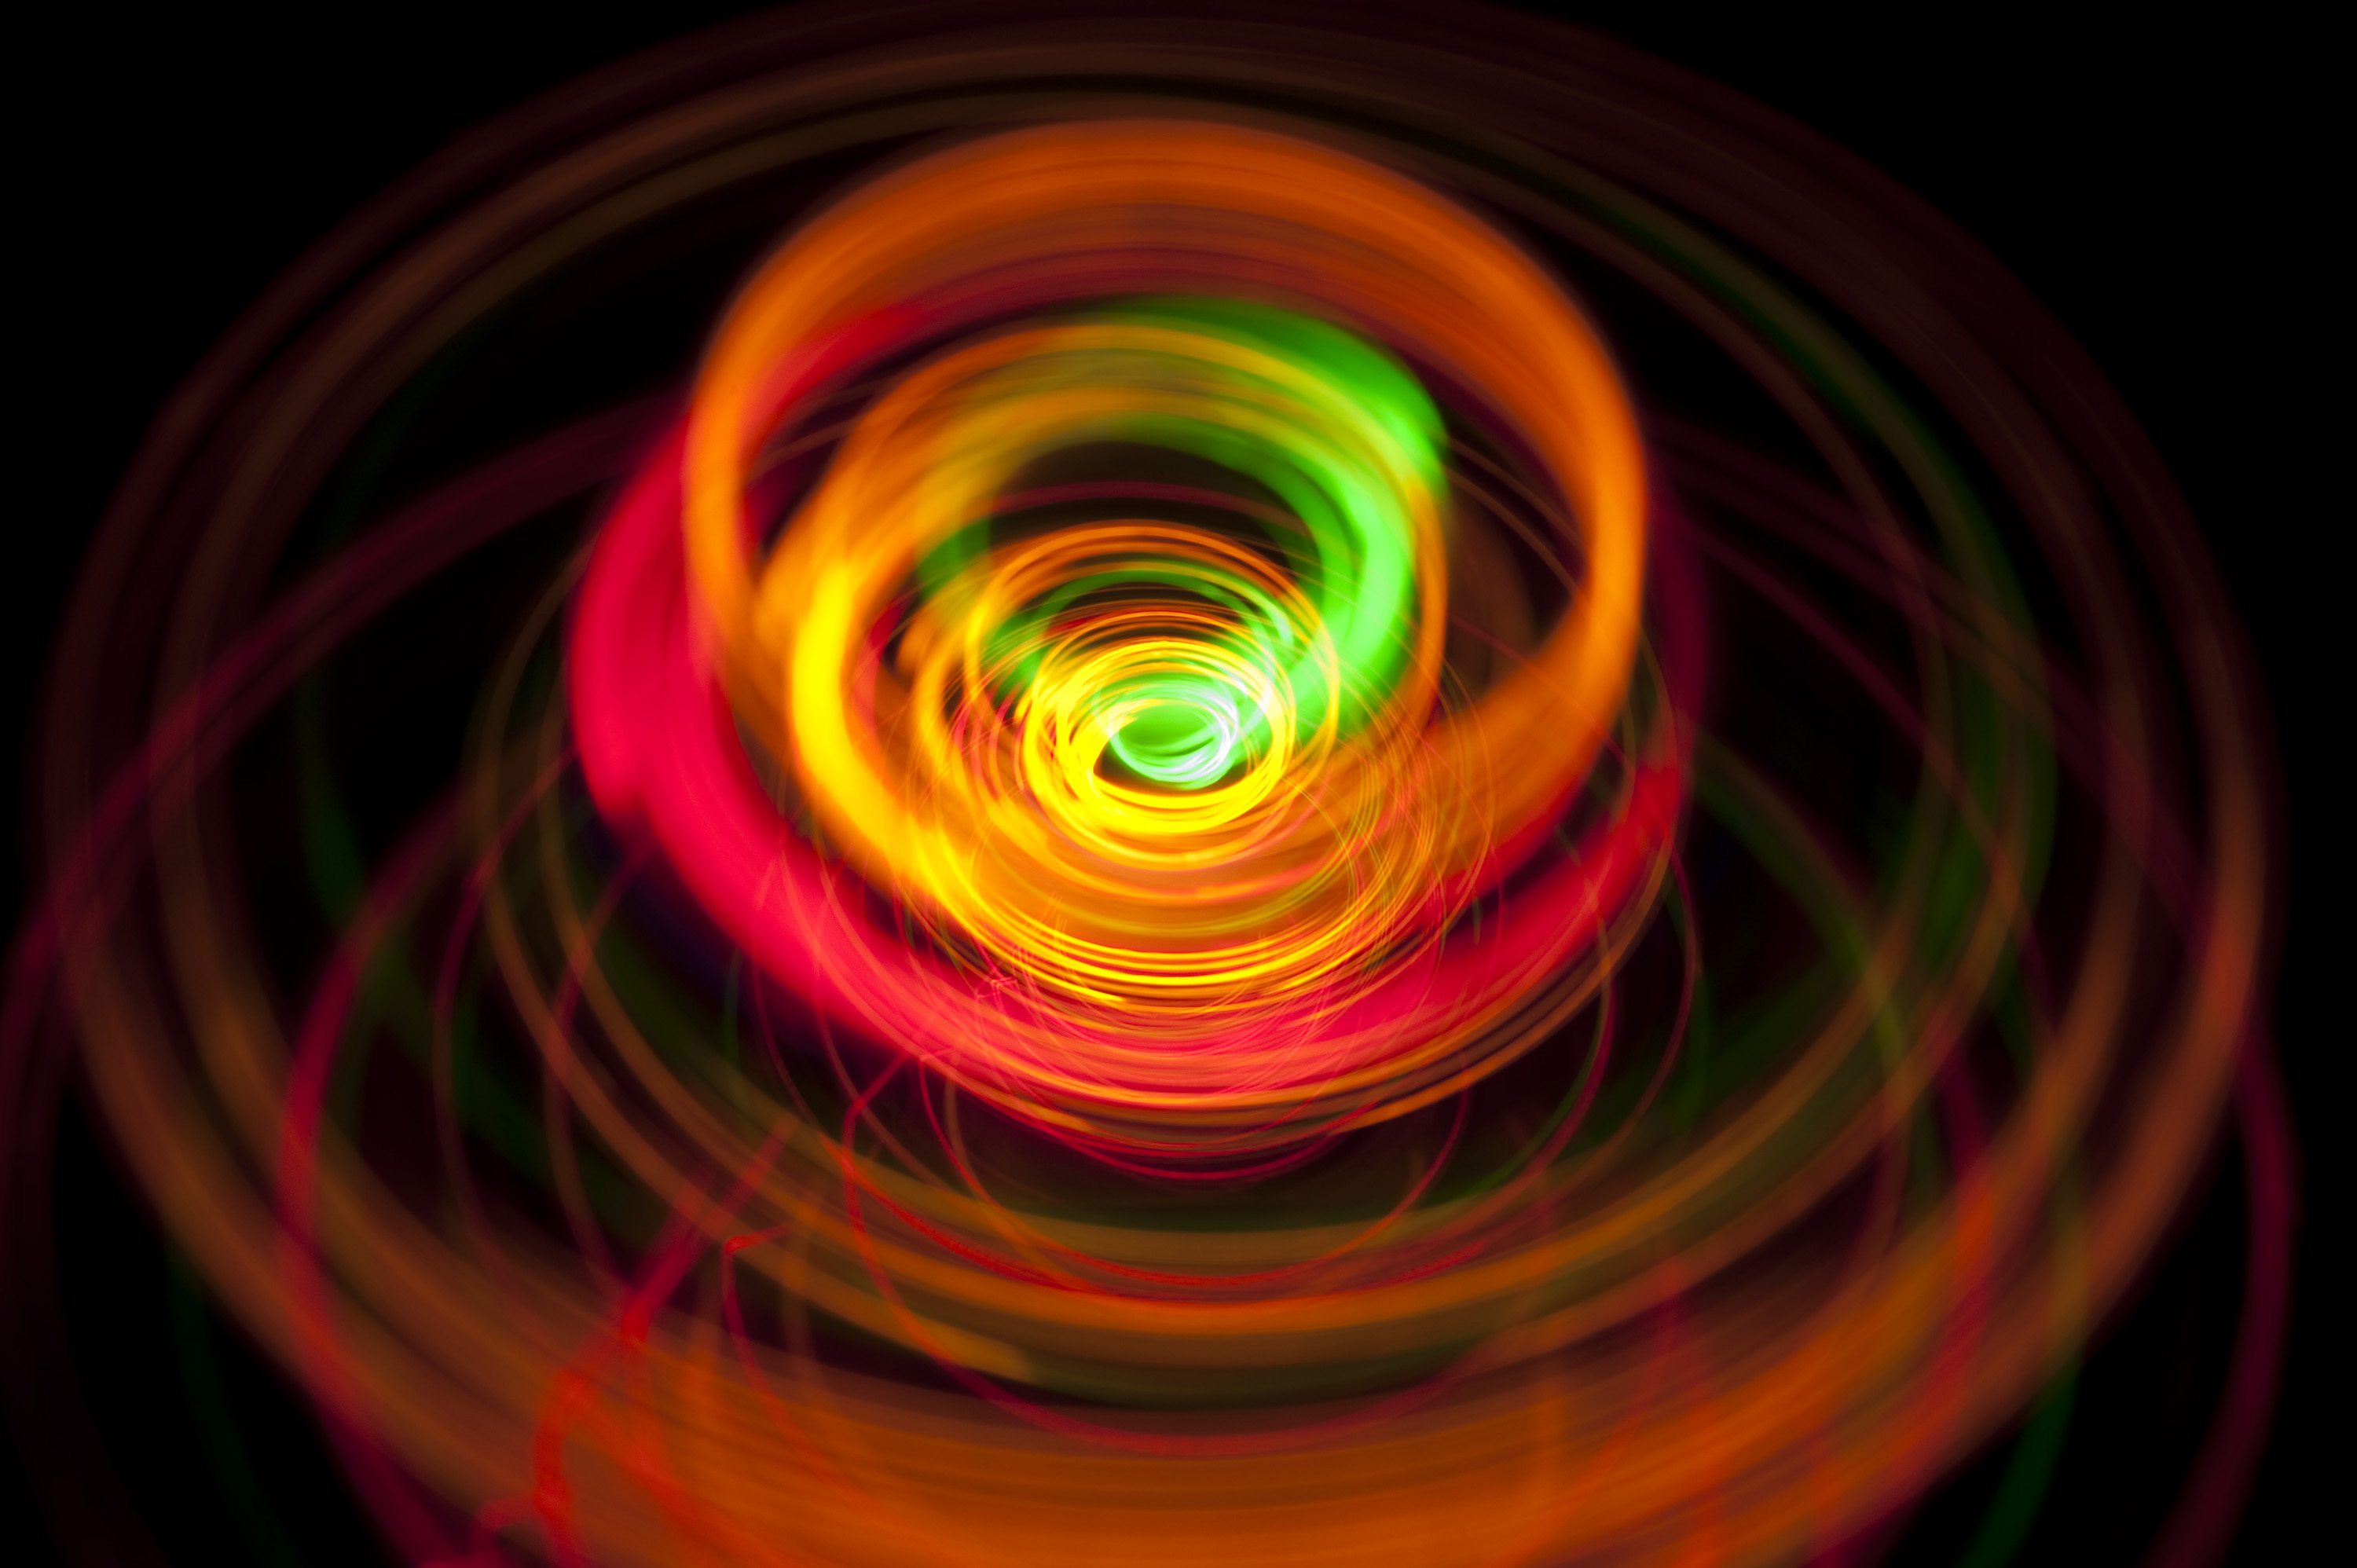 a catherine wheel firework effect of vividly coloured light